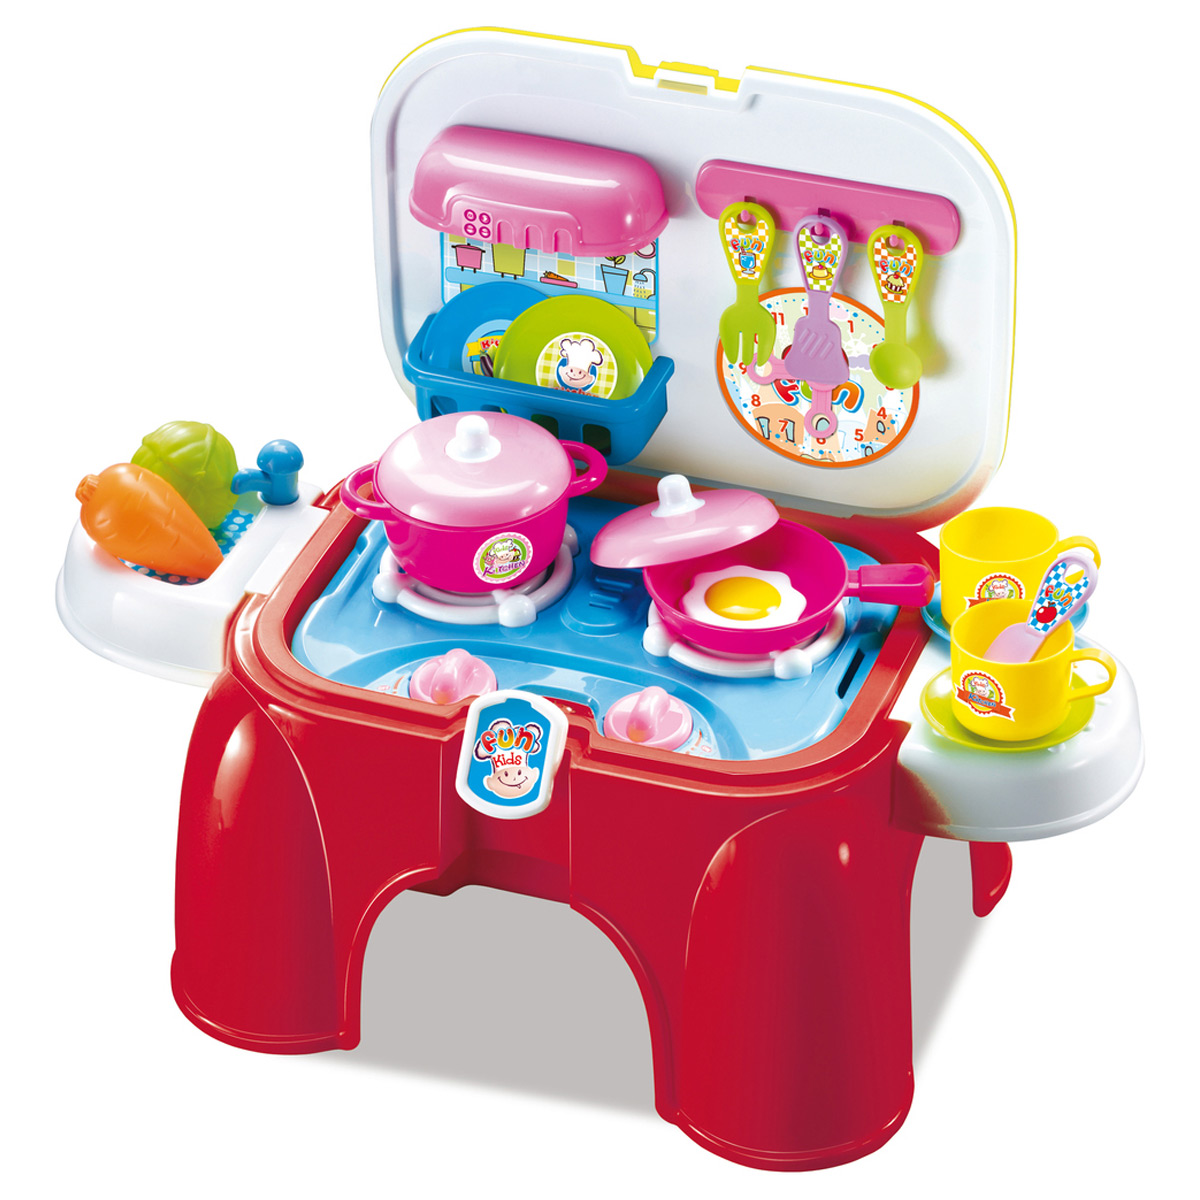 Children\'s kitchen playset – Chair | BGP 1021 | Buddy toys